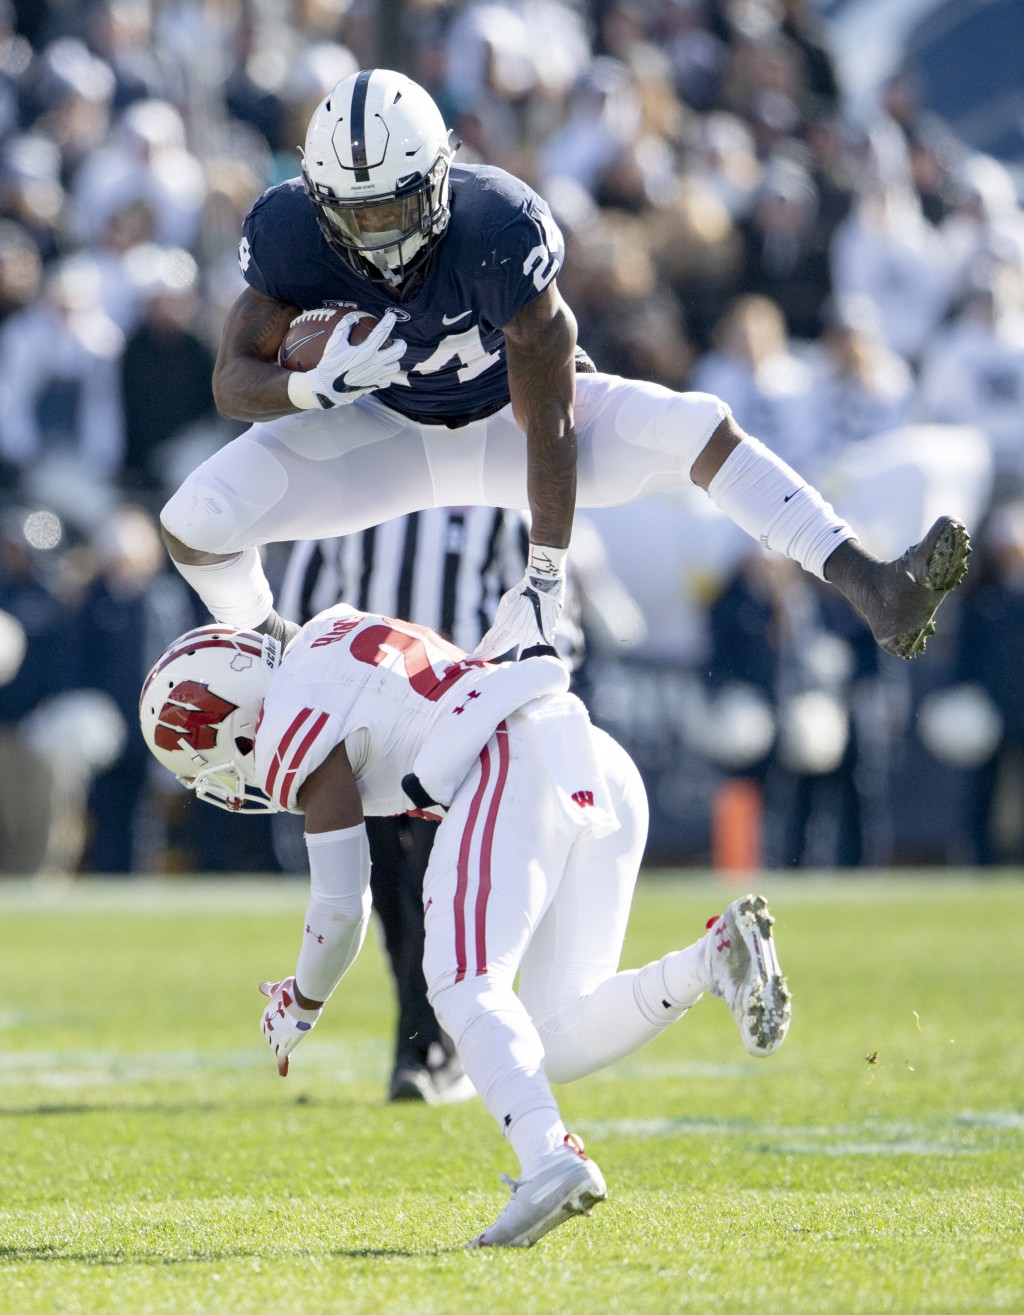 Penn State running back Miles Sanders hurdles Wisconsin's Faion Hicks during an NCAA college football game Saturday, Nov. 10, 2018, in State College,